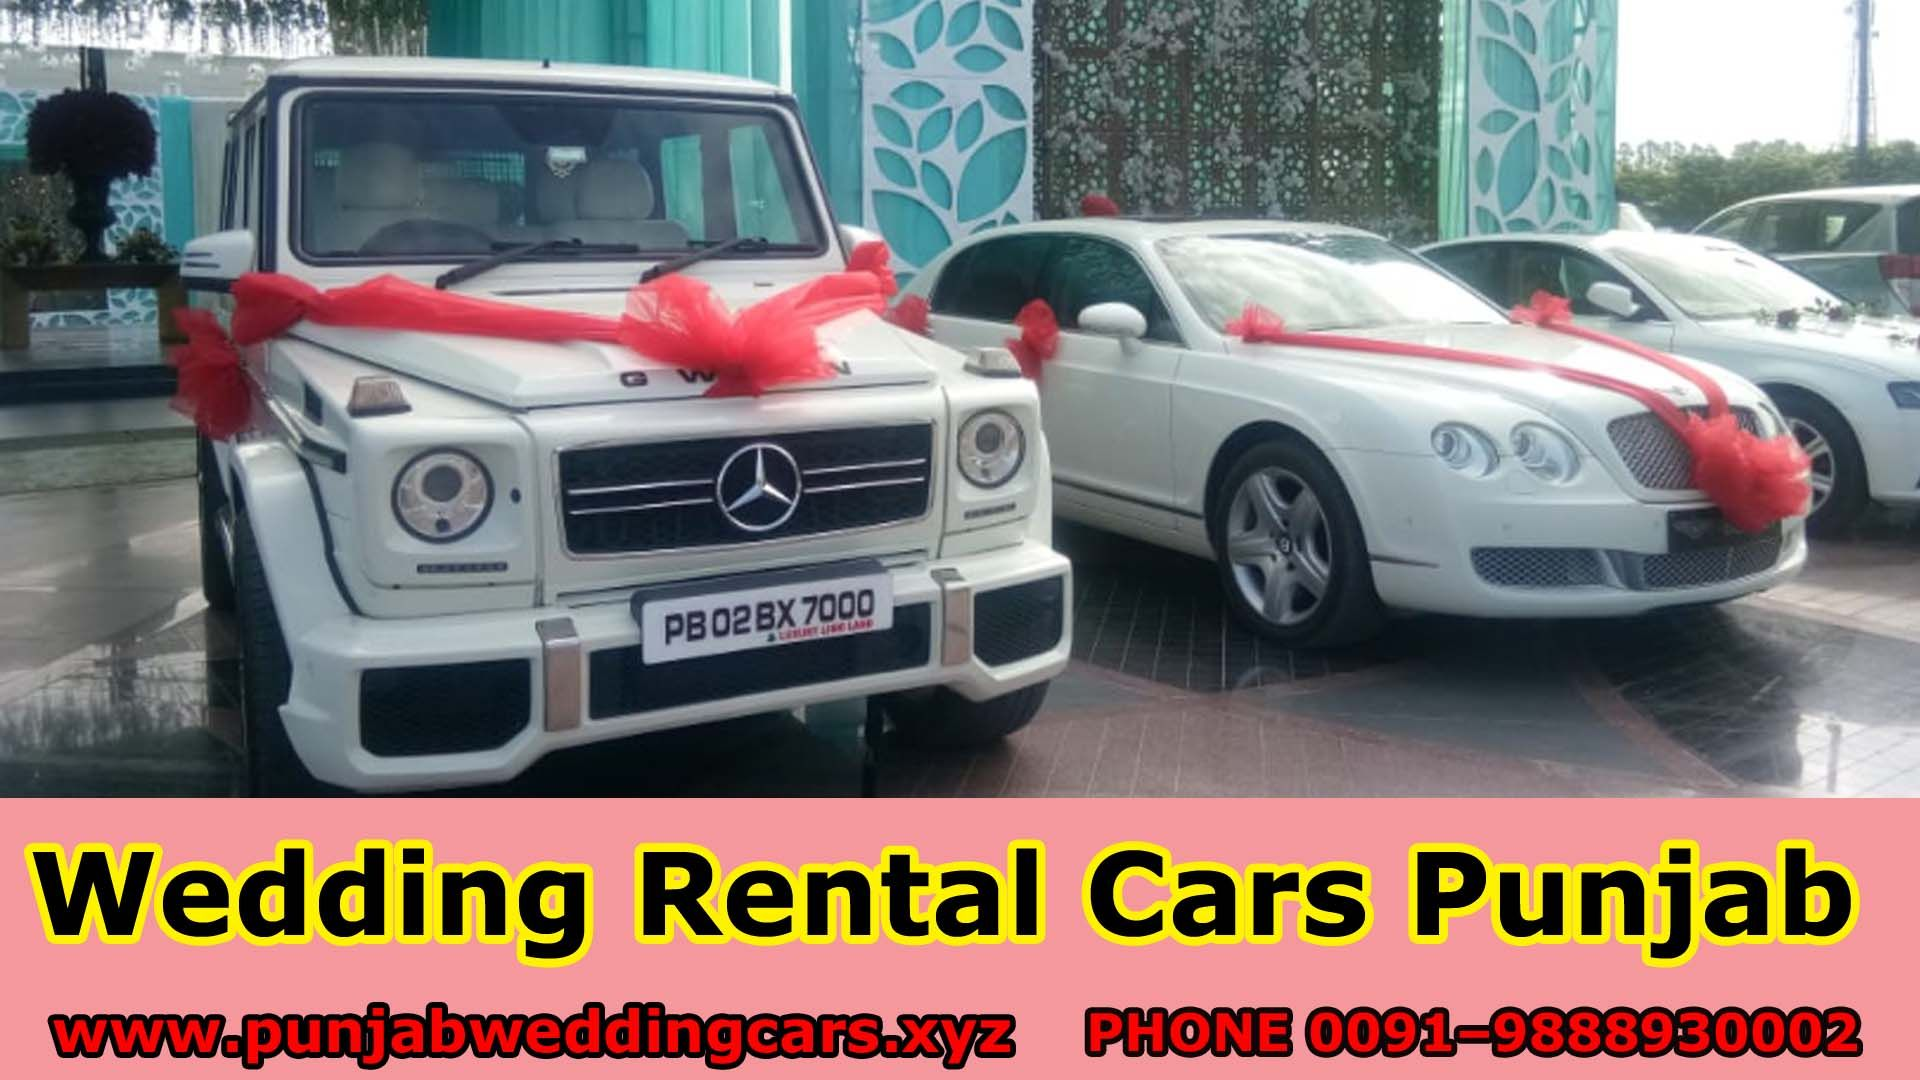 Best Luxury Wedding Cars Rental In The Jalandhar Punjab And Nationwide Whether You Re Cruising In An Economy Suv Luxu Wedding Car Car Rental Luxury Wedding